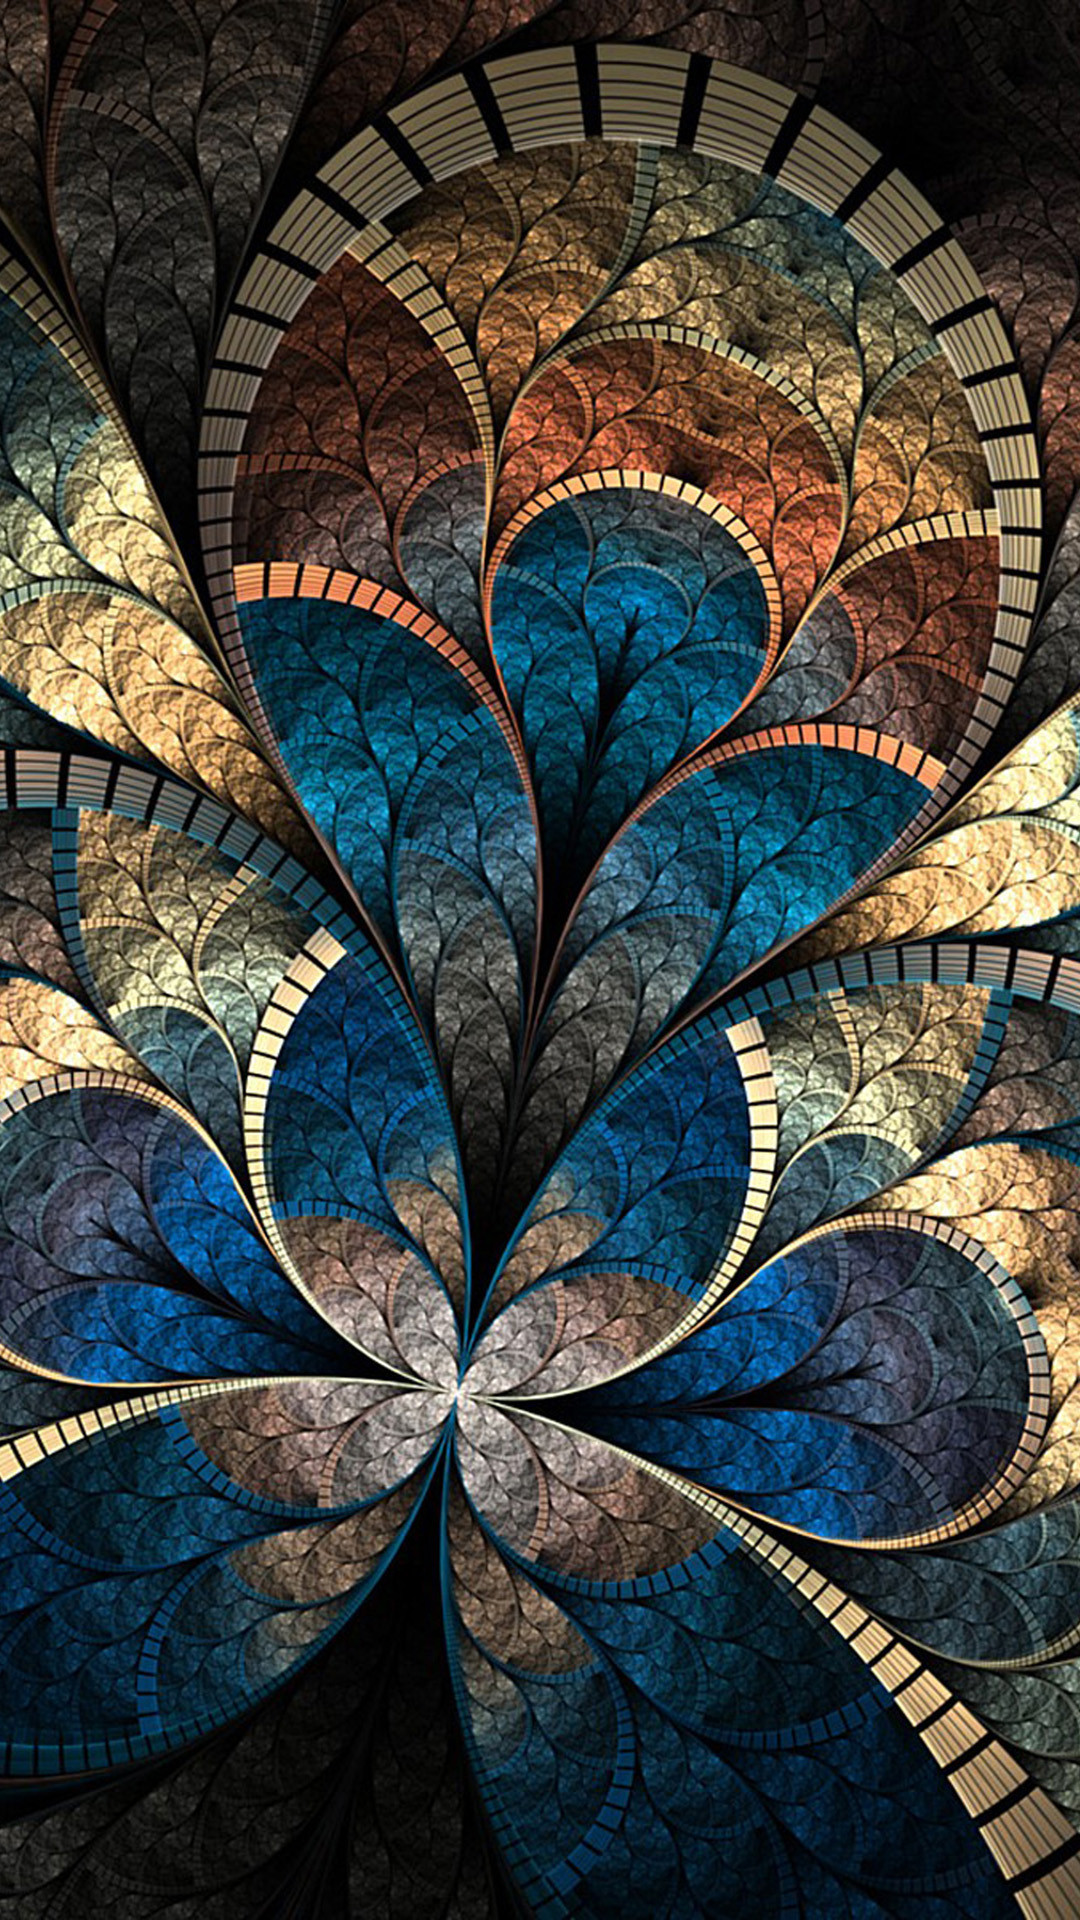 Retro Art Flower Abstract Iphone Wallpaper Iphone Wallpaper